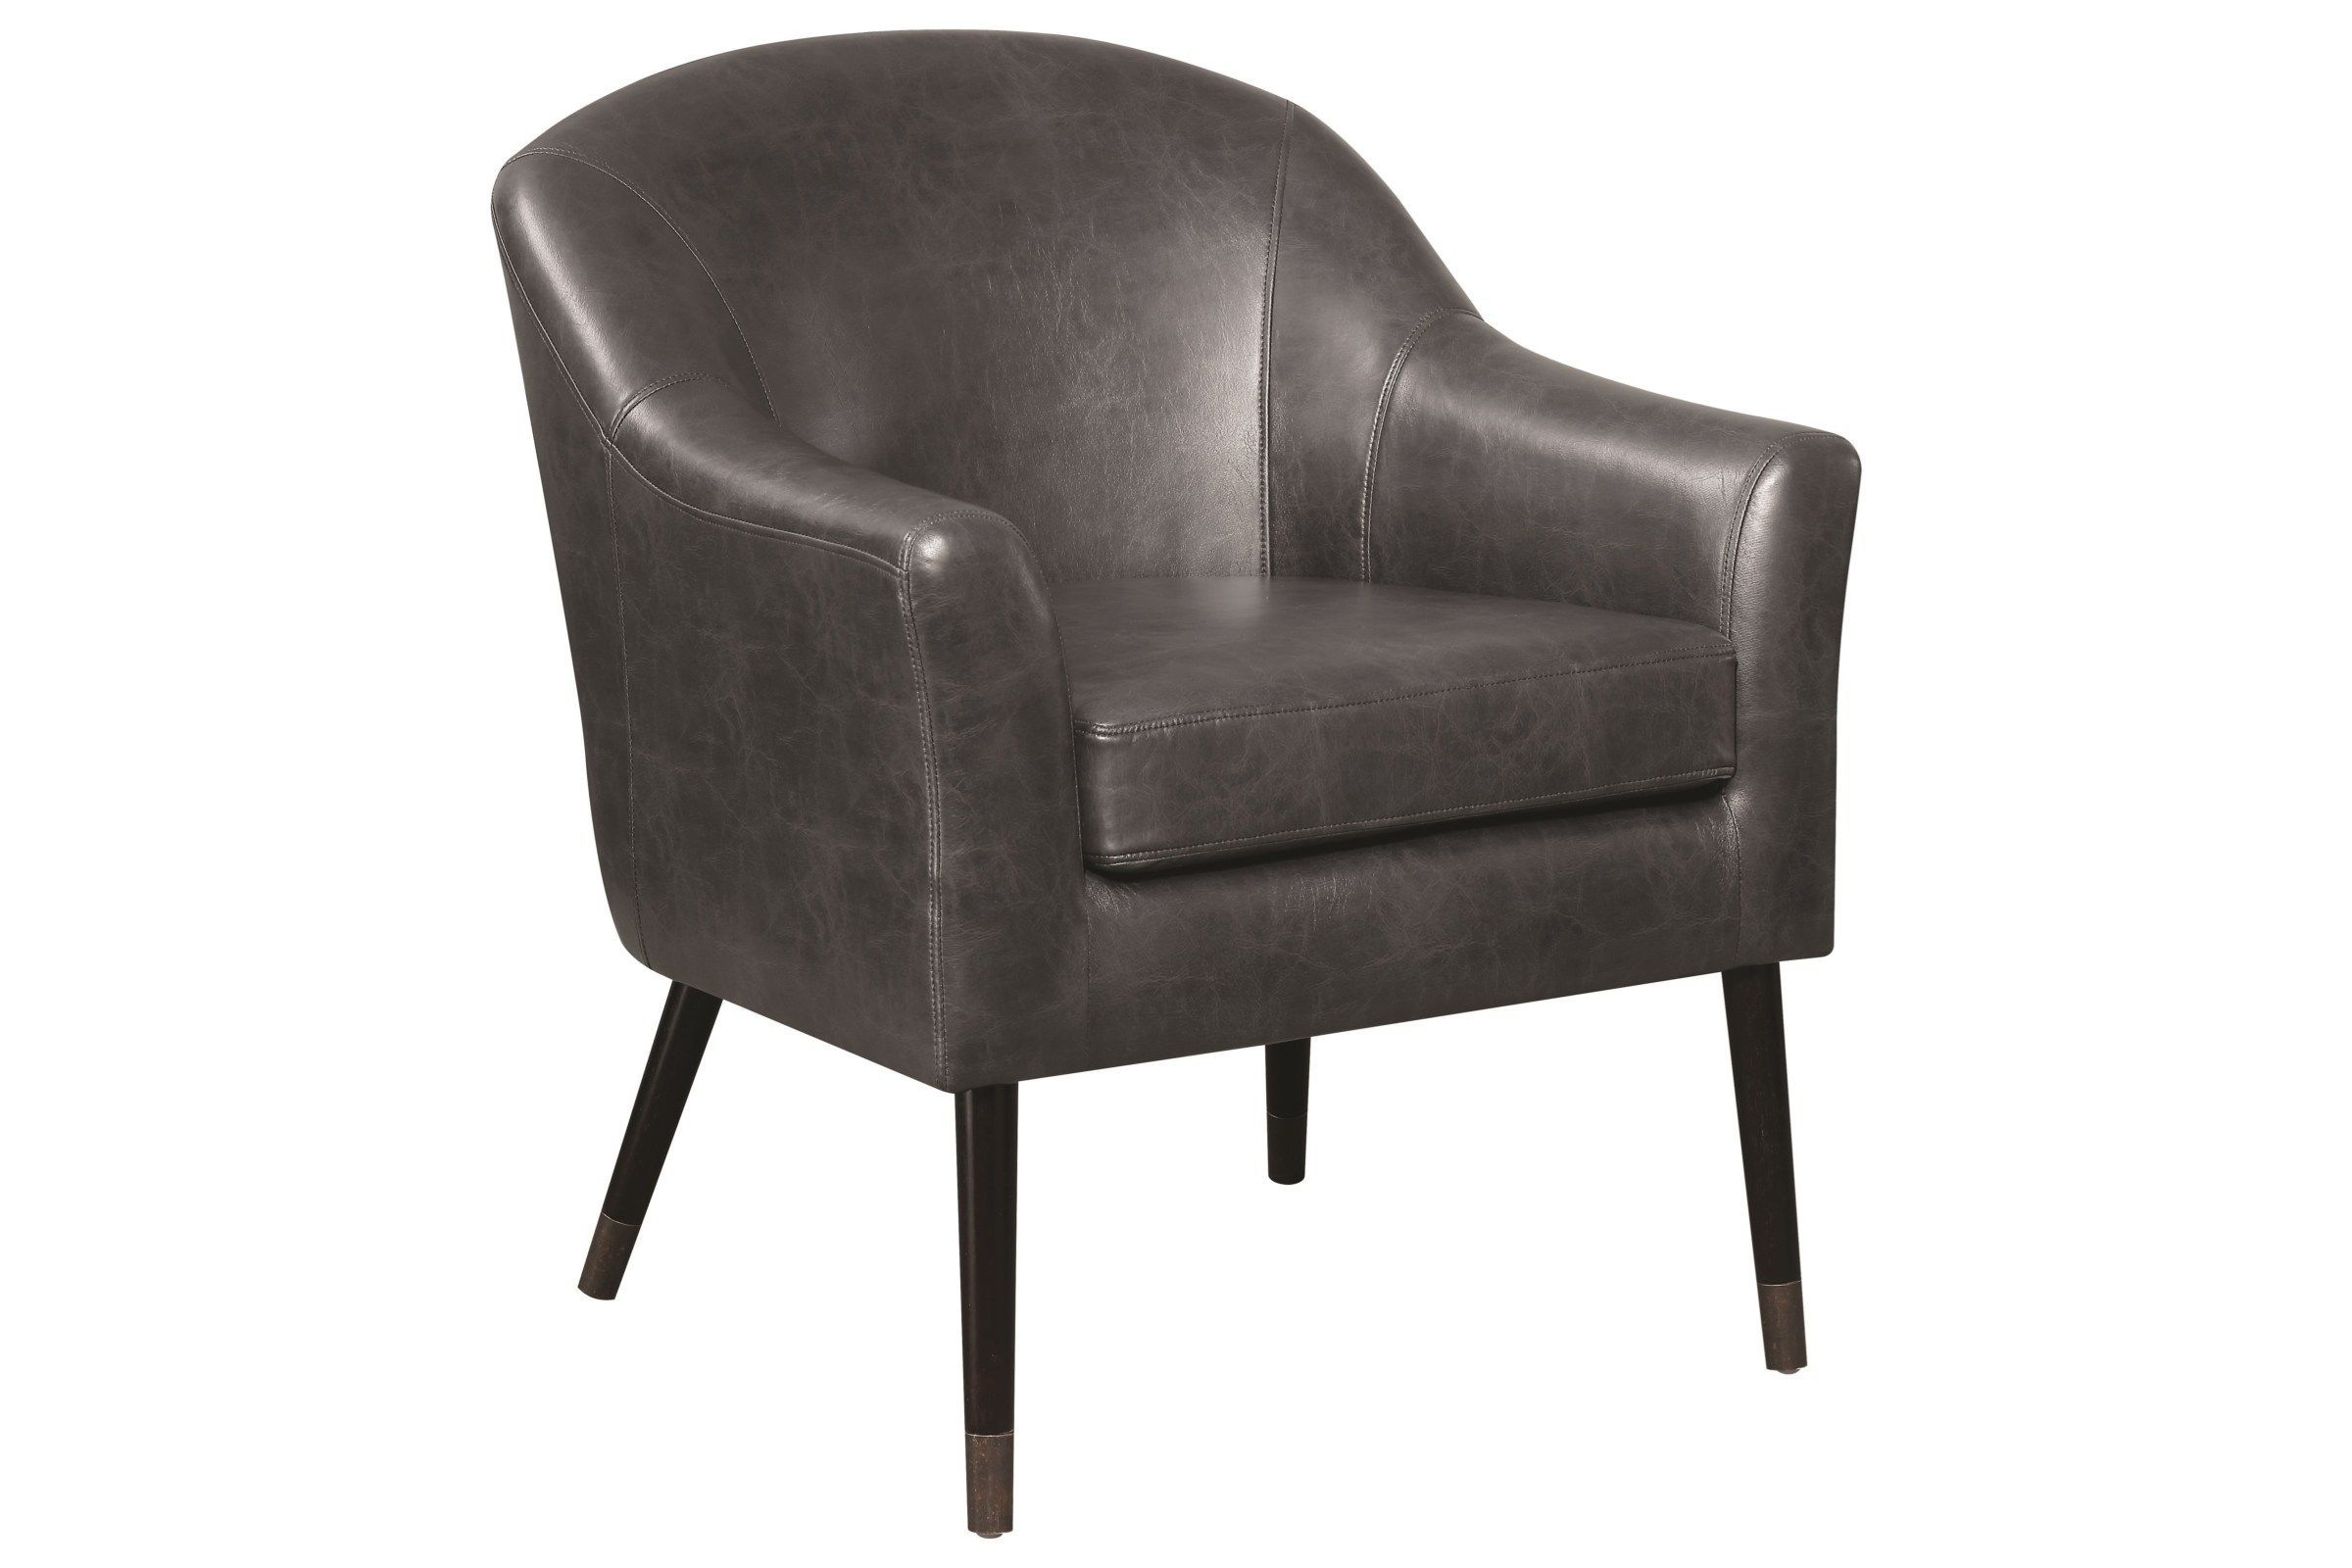 Scott Living Mid Century Modern Black Accent Chair Barrel Chair